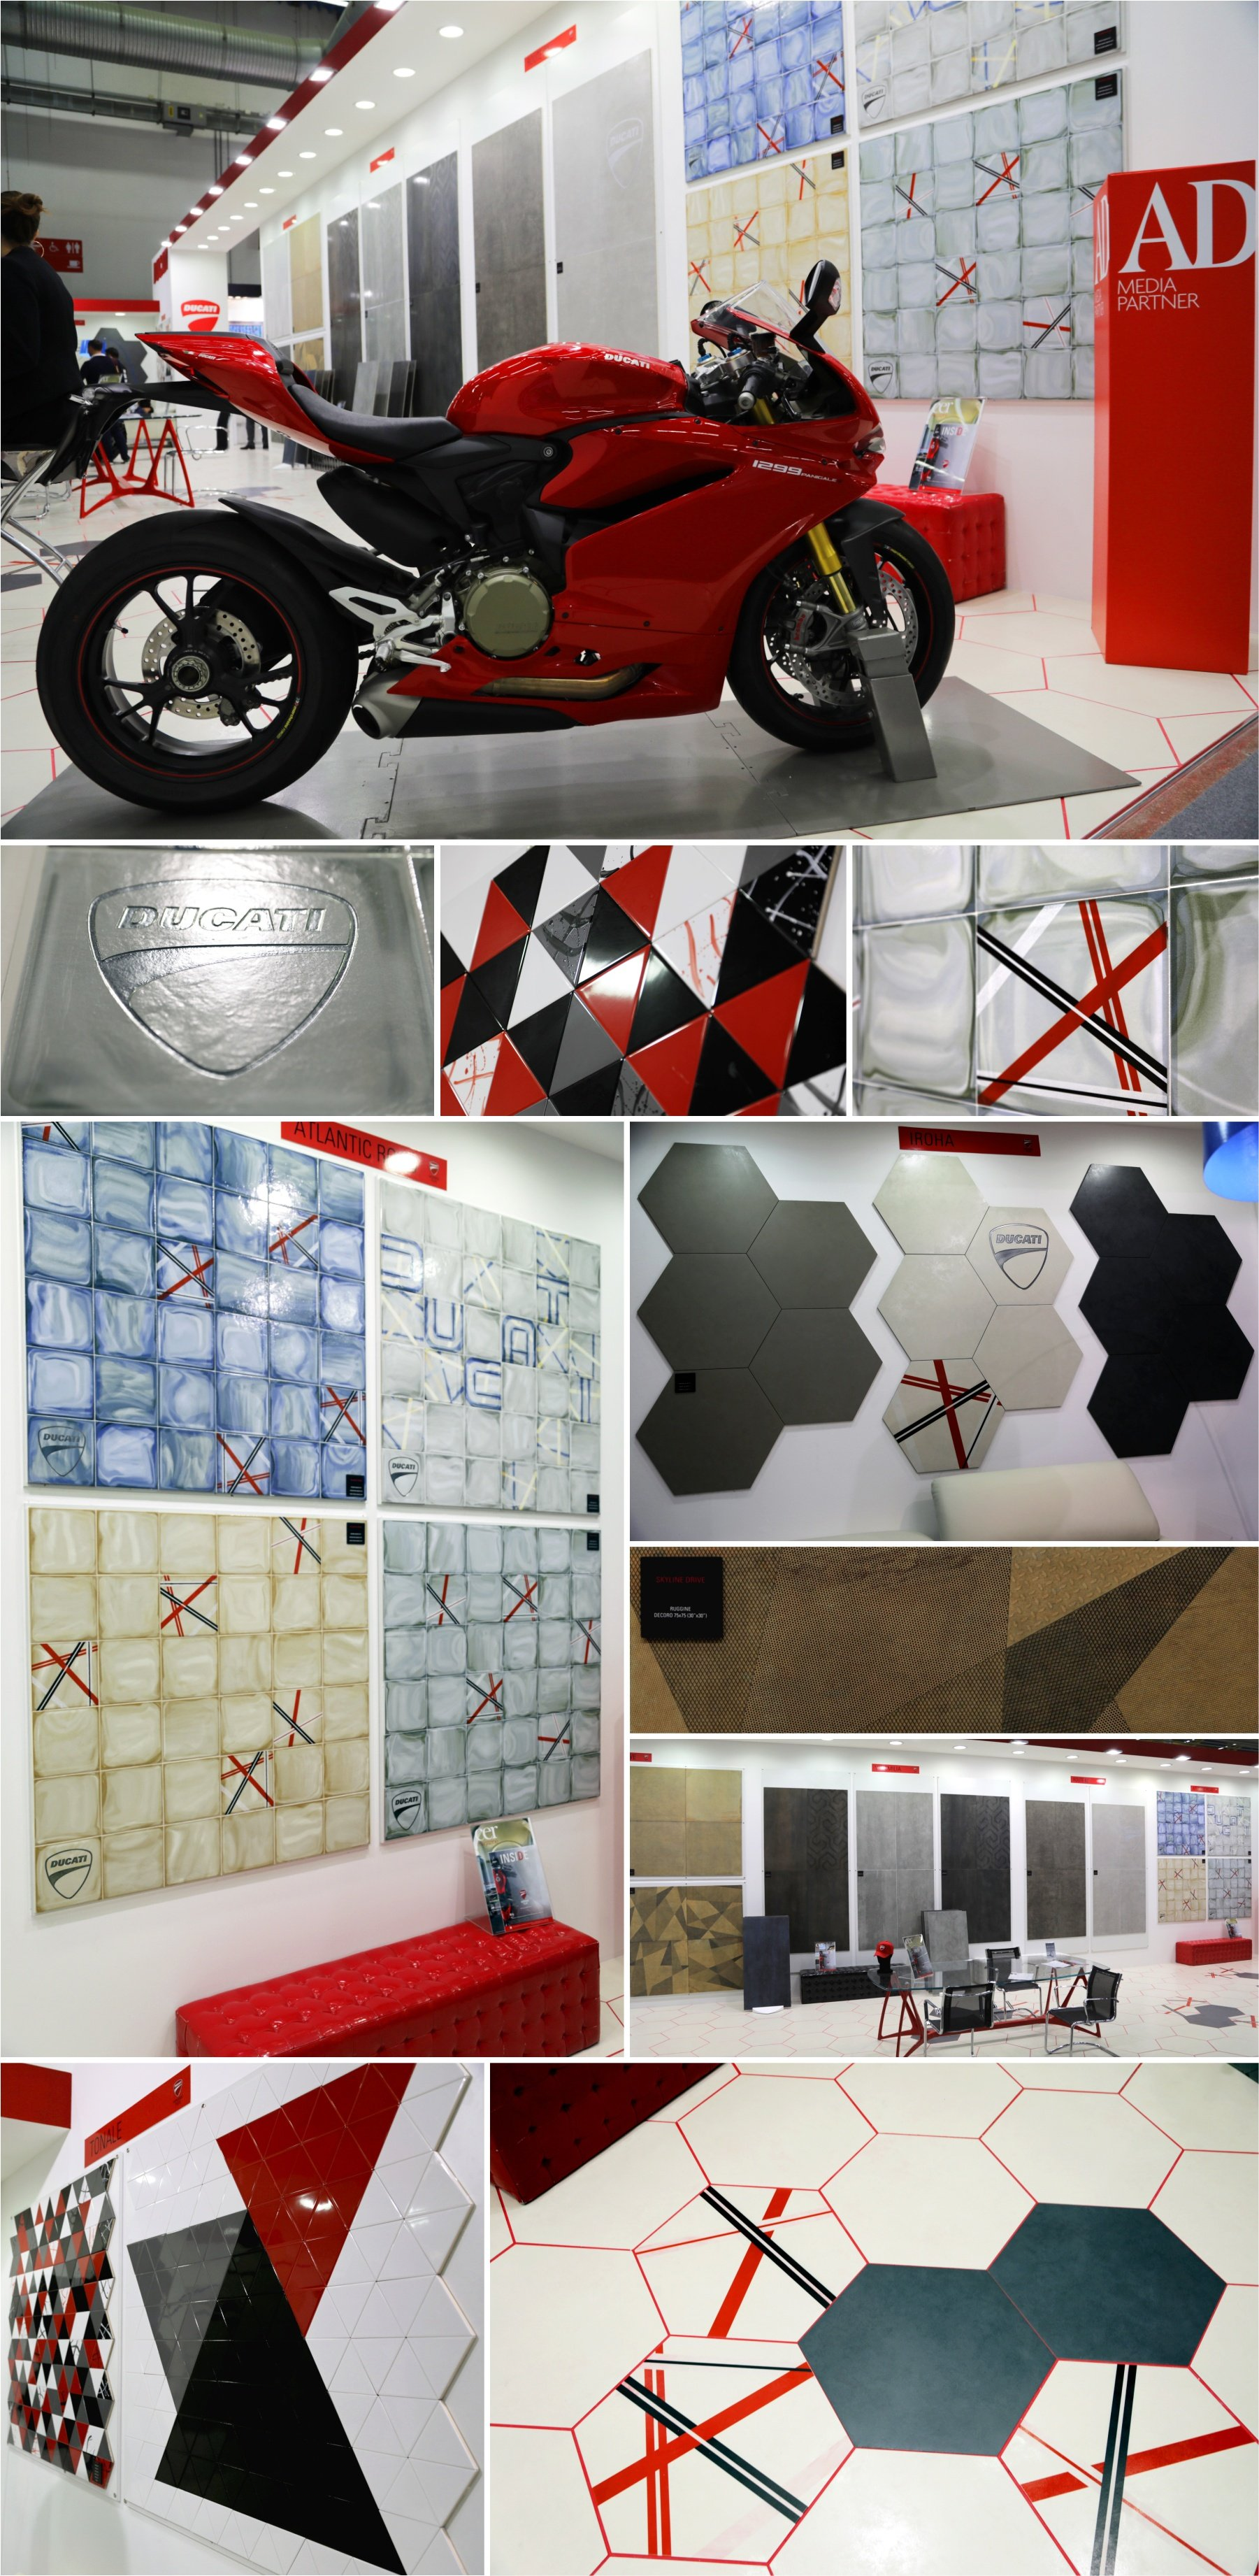 Ceramic and Porcelain Tiles by Tonino Lamborghini Tiles and Style